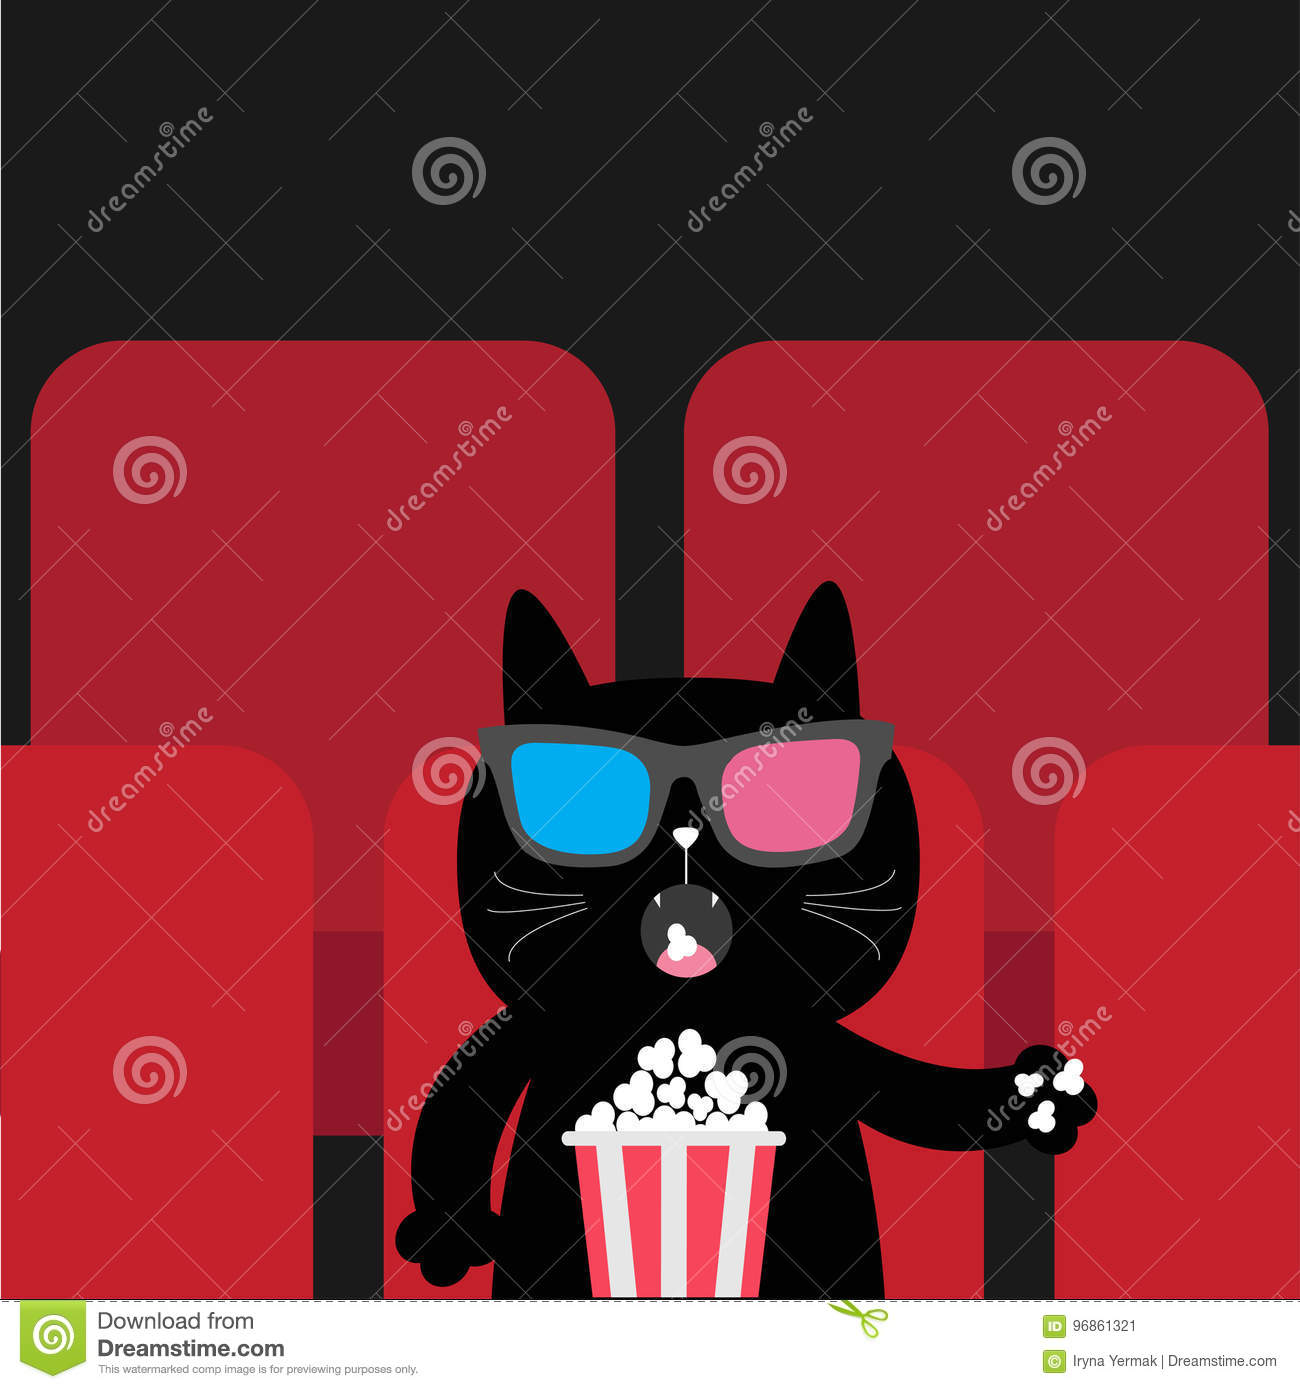 5762c6f56d7 Cat eating popcorn in movie theater. Cute cartoon character. Film show  Cinema background.